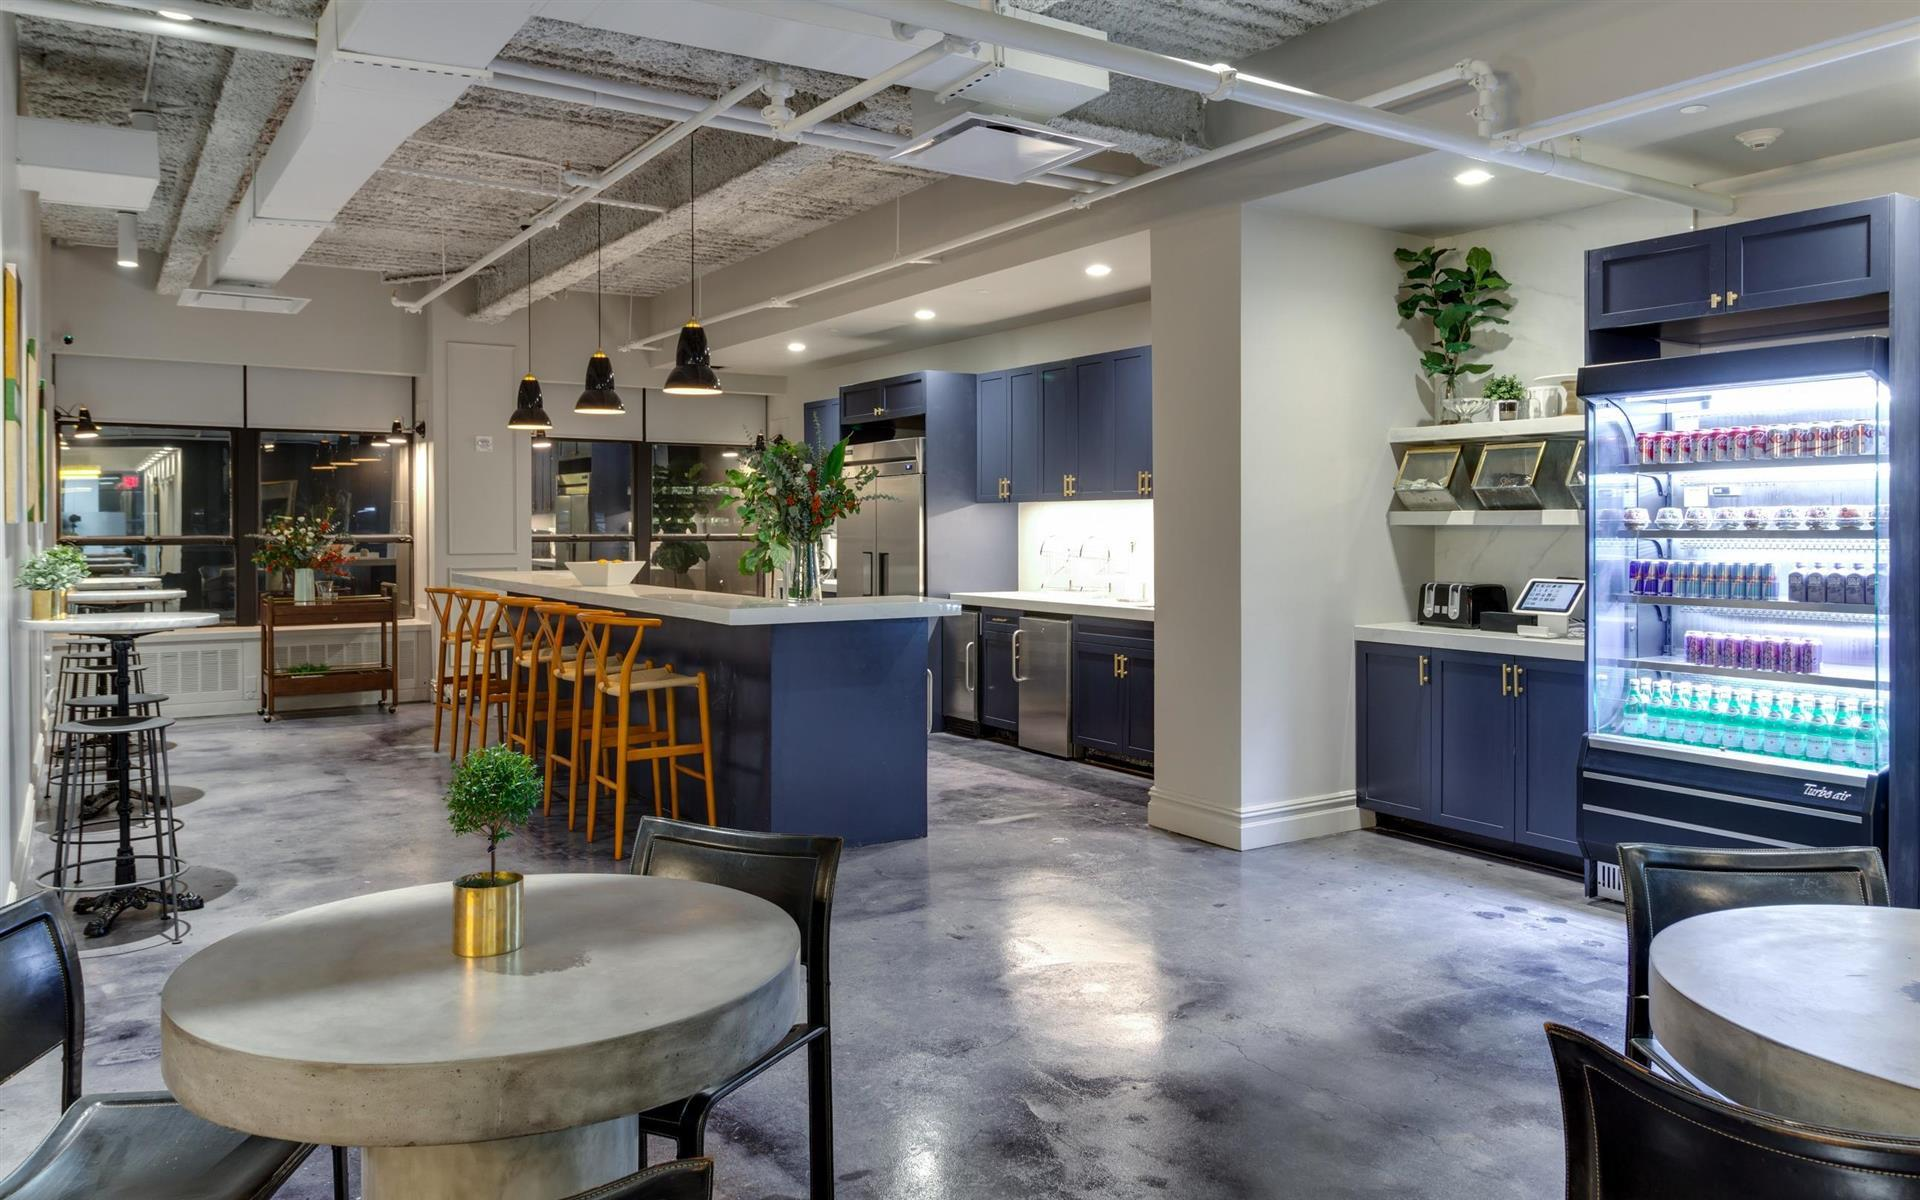 Kitchen area of a Bond Collective coworking space